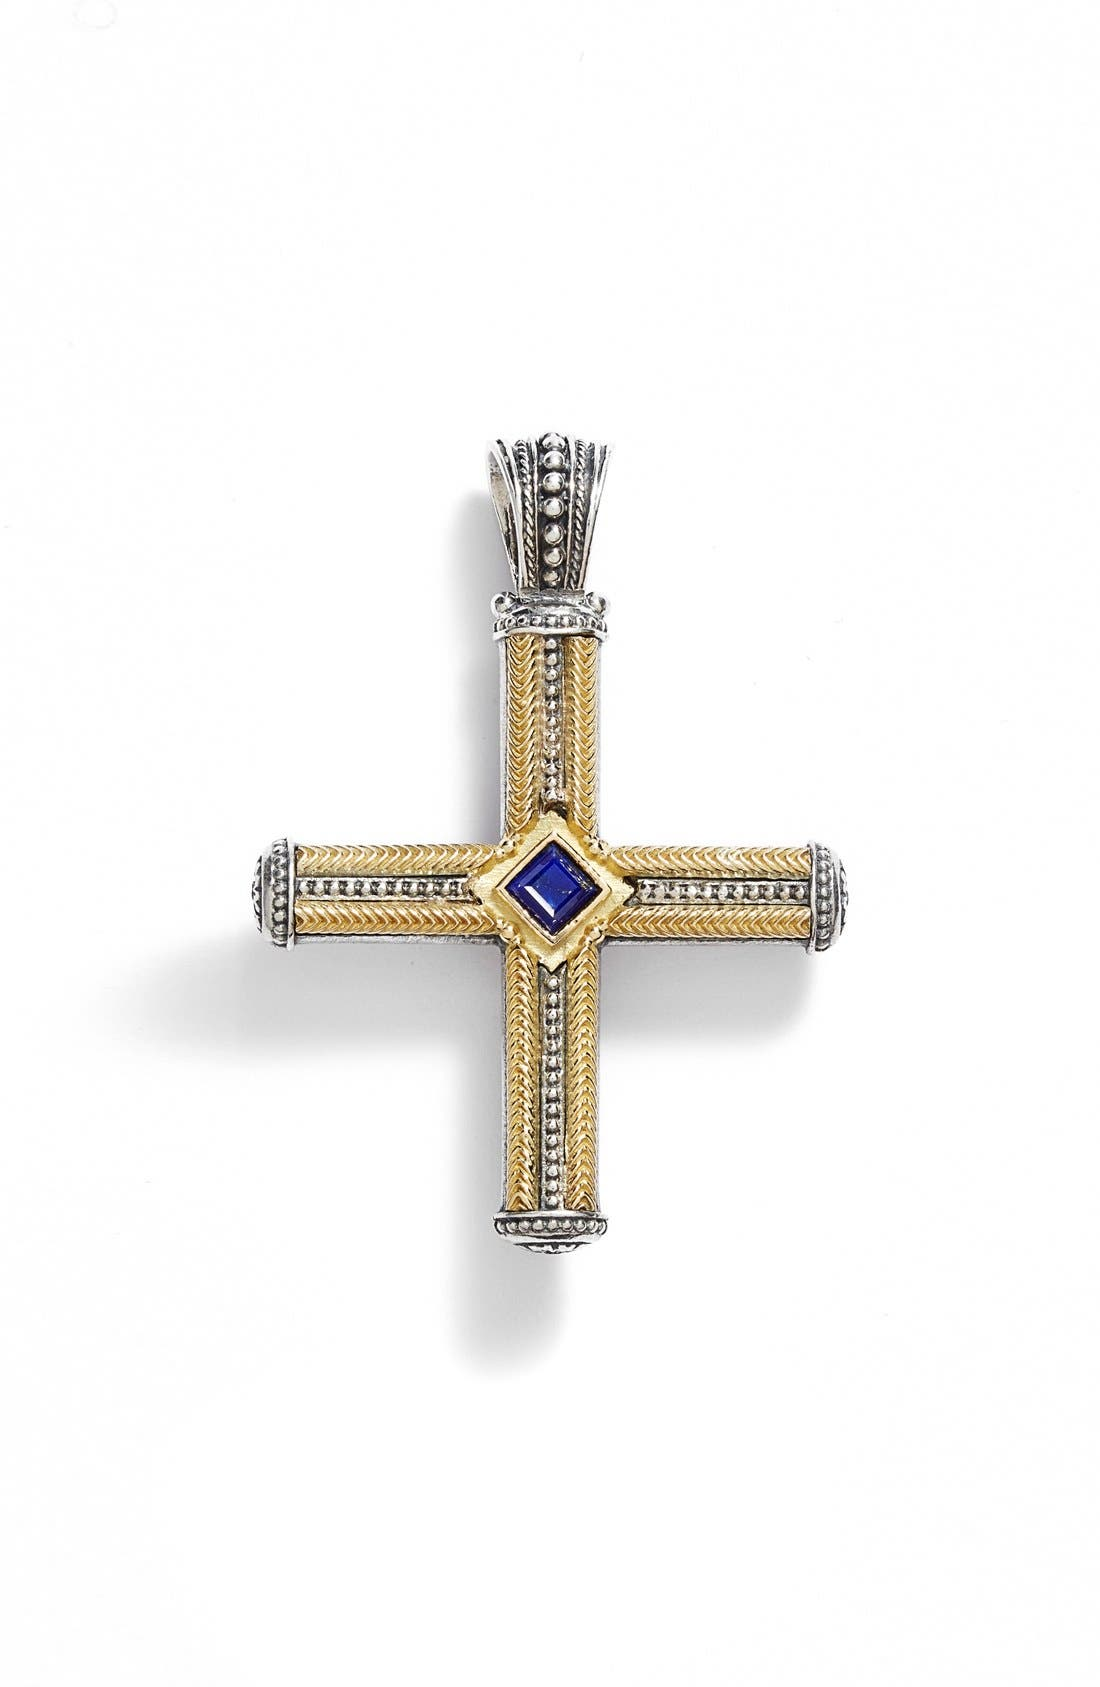 'Orpheus' Semiprecious Stone Cross Pendant,                         Main,                         color, SILVER/ GOLD/ LAPIS